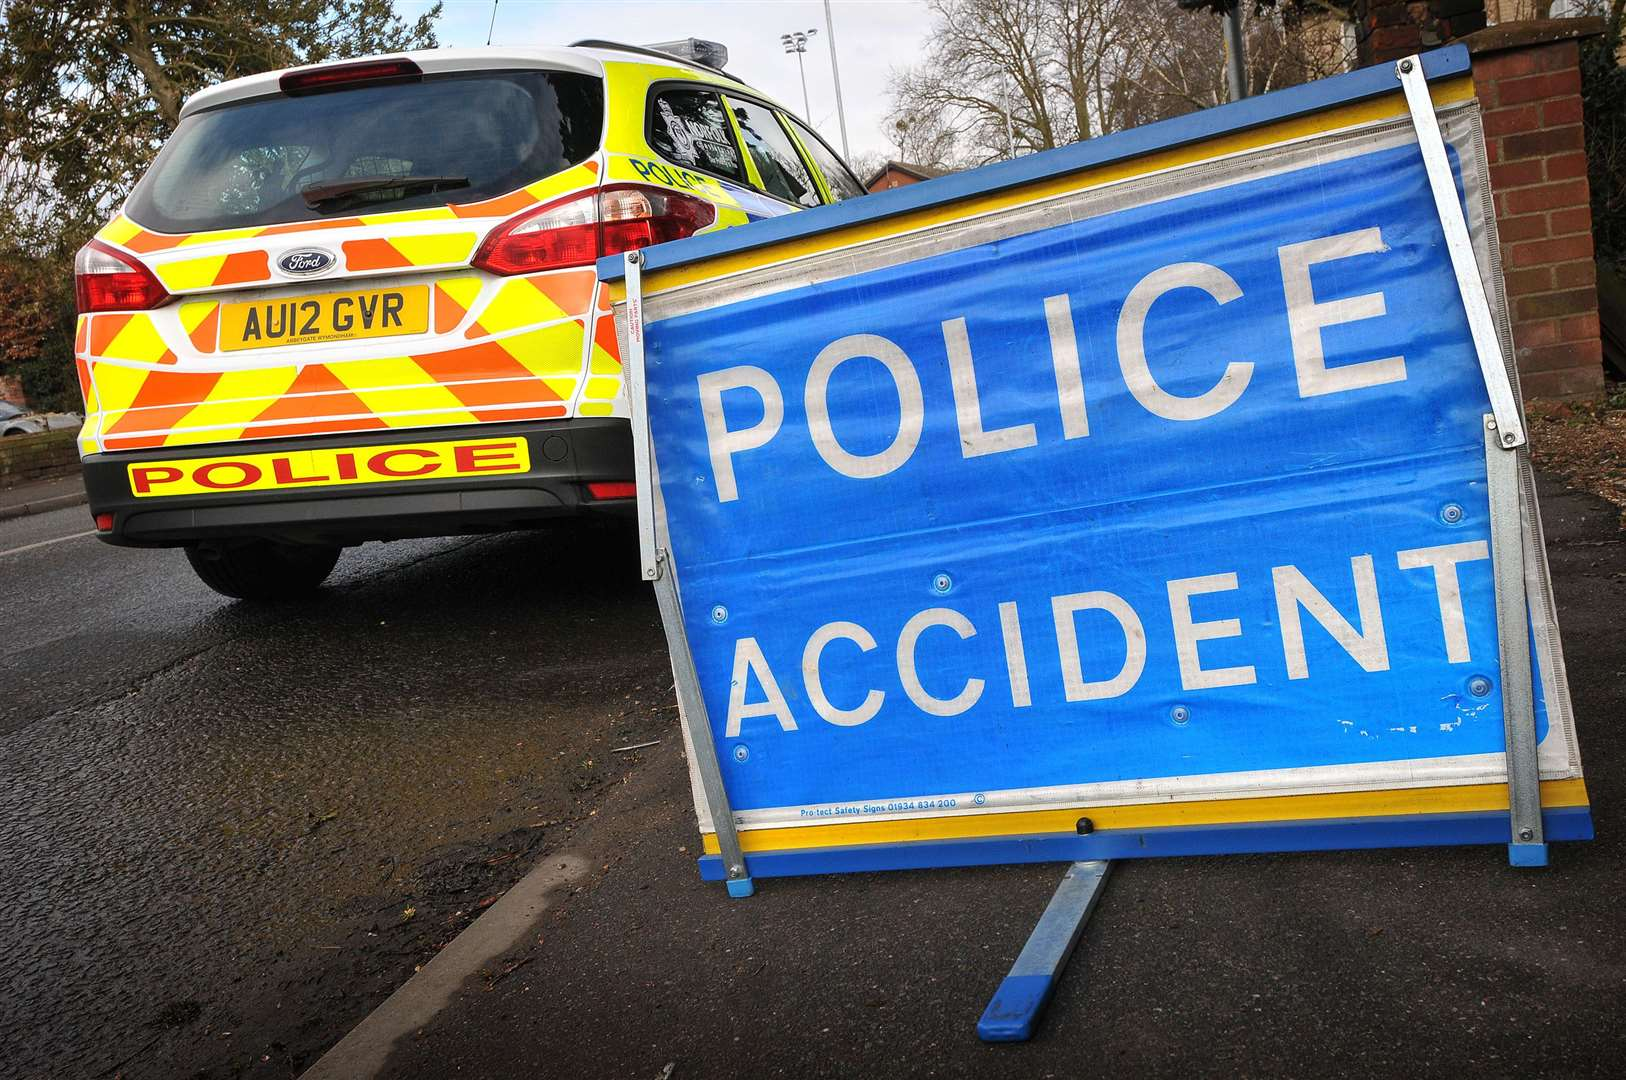 Police on the scene of an RTC - Norfolk Police accident sign. (44113427)